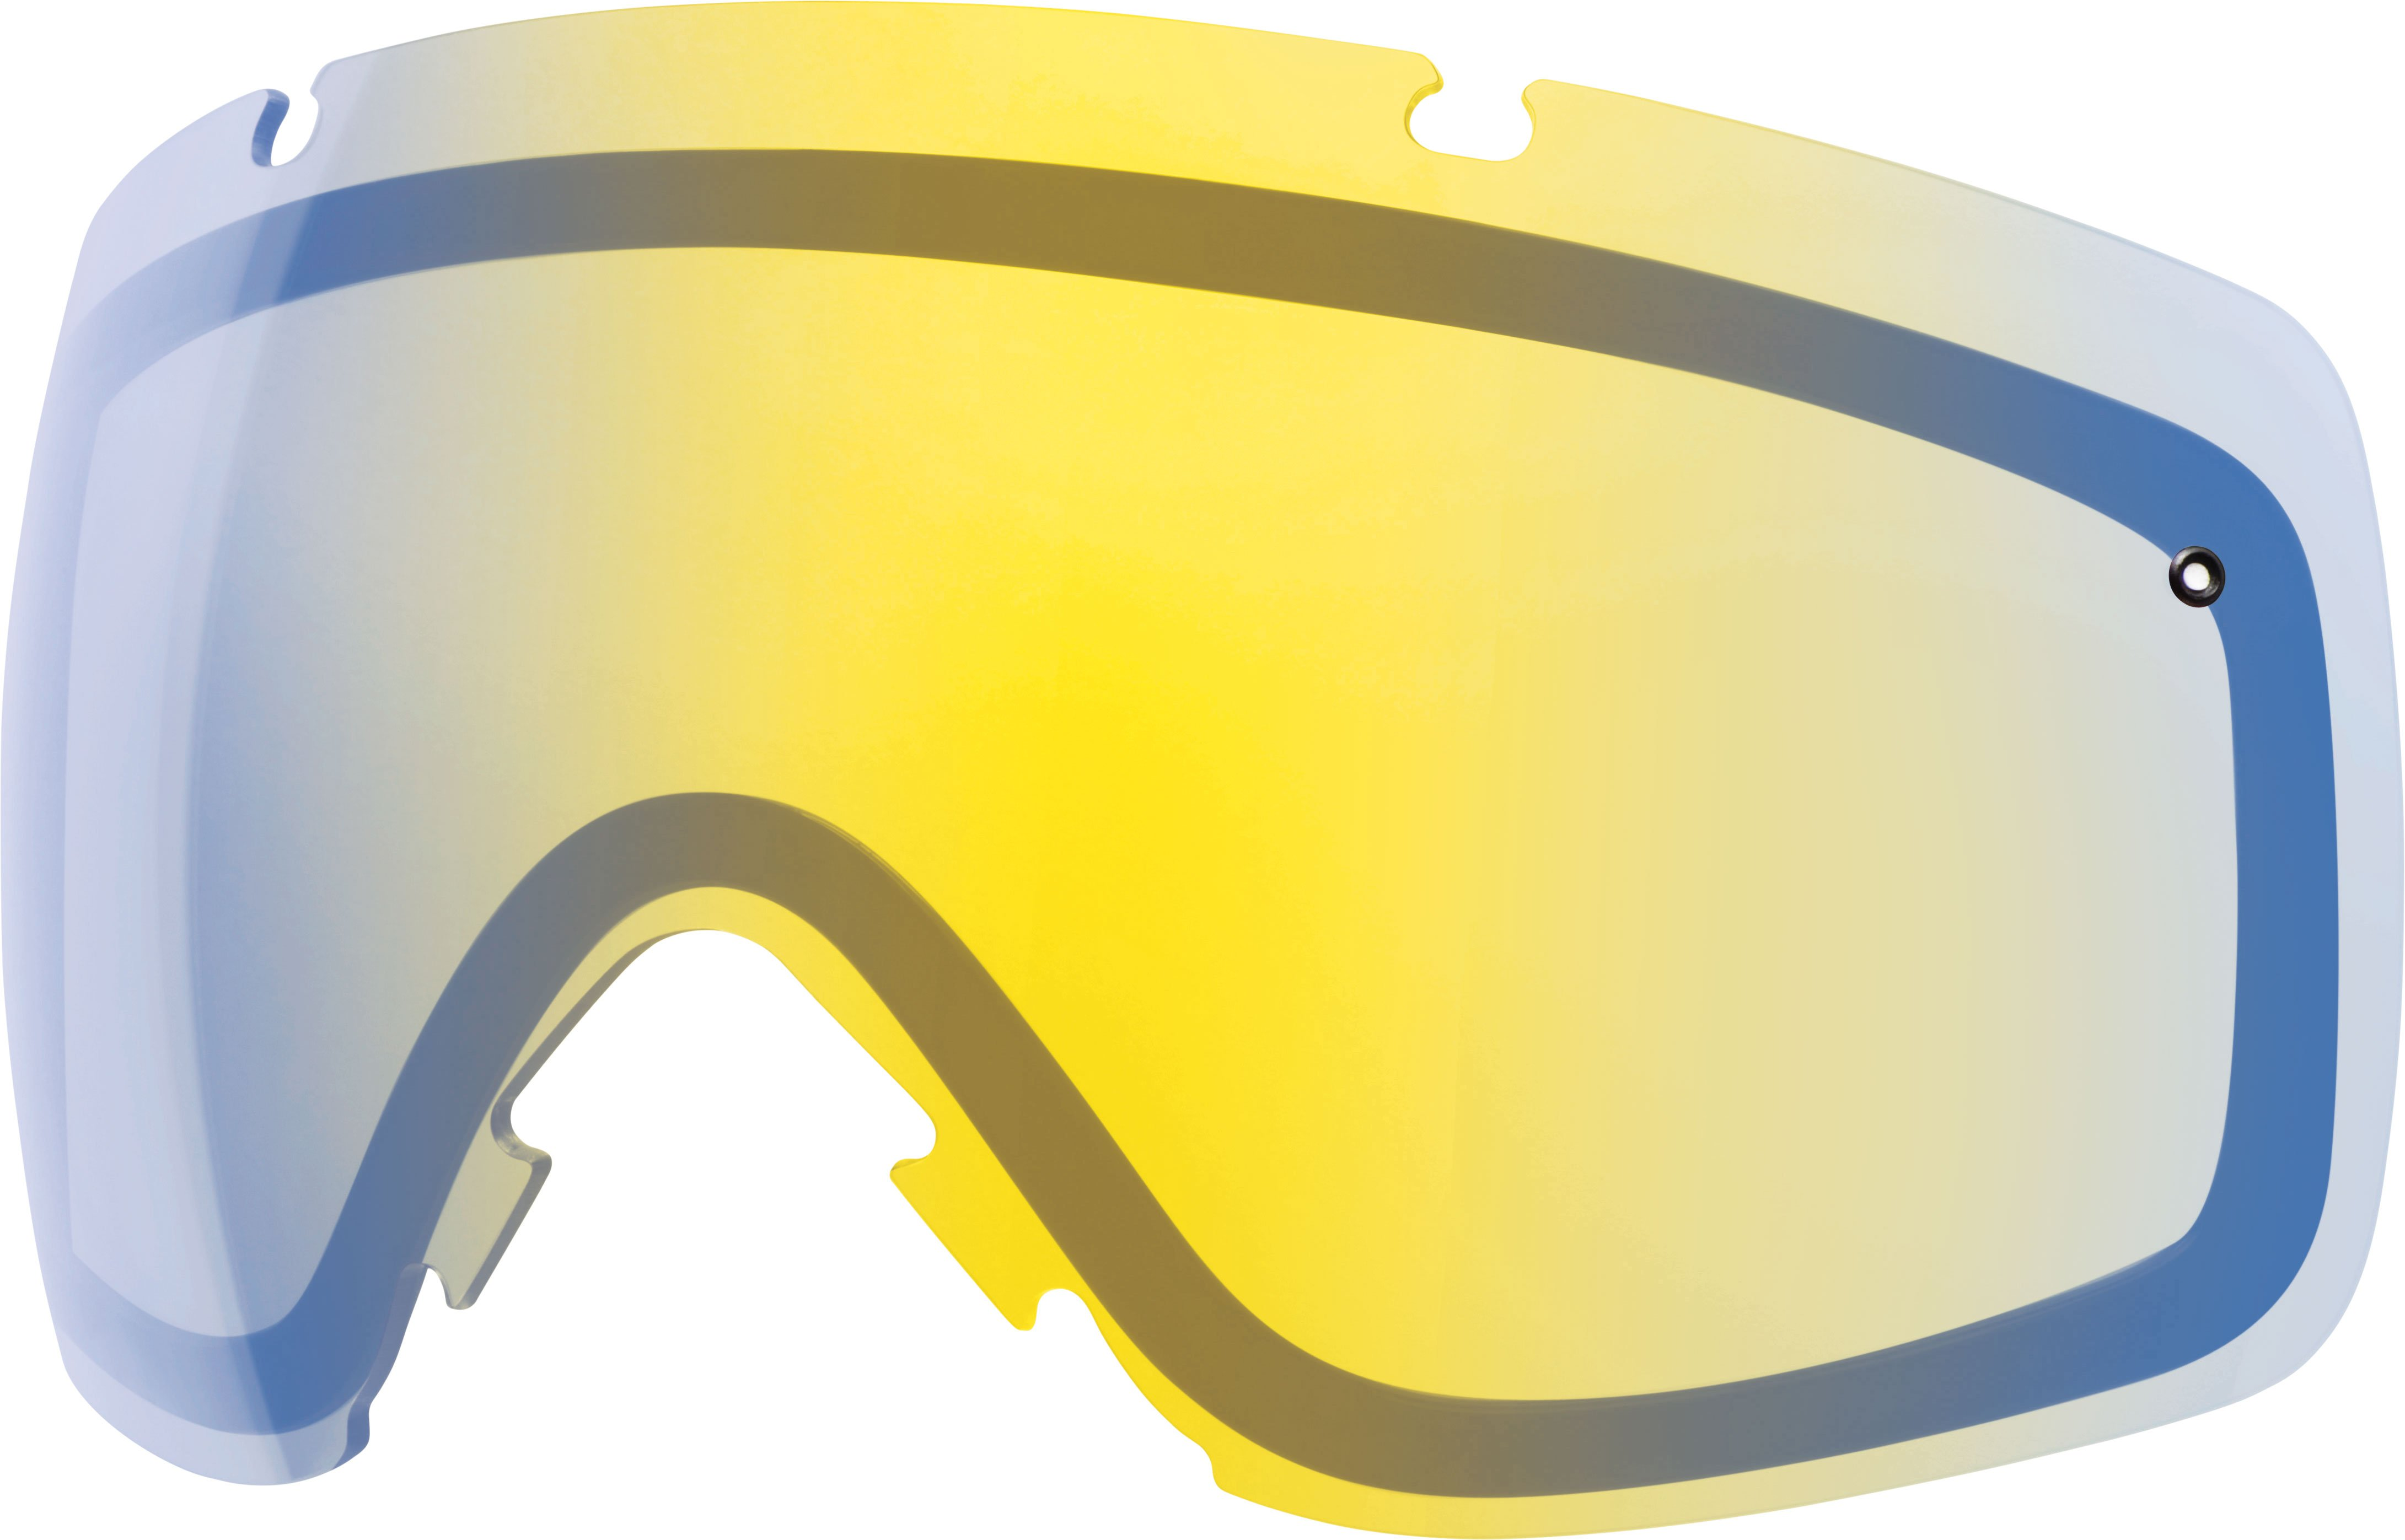 ab5303a1a72 Smith Goggle Lens Color   Tint Guide